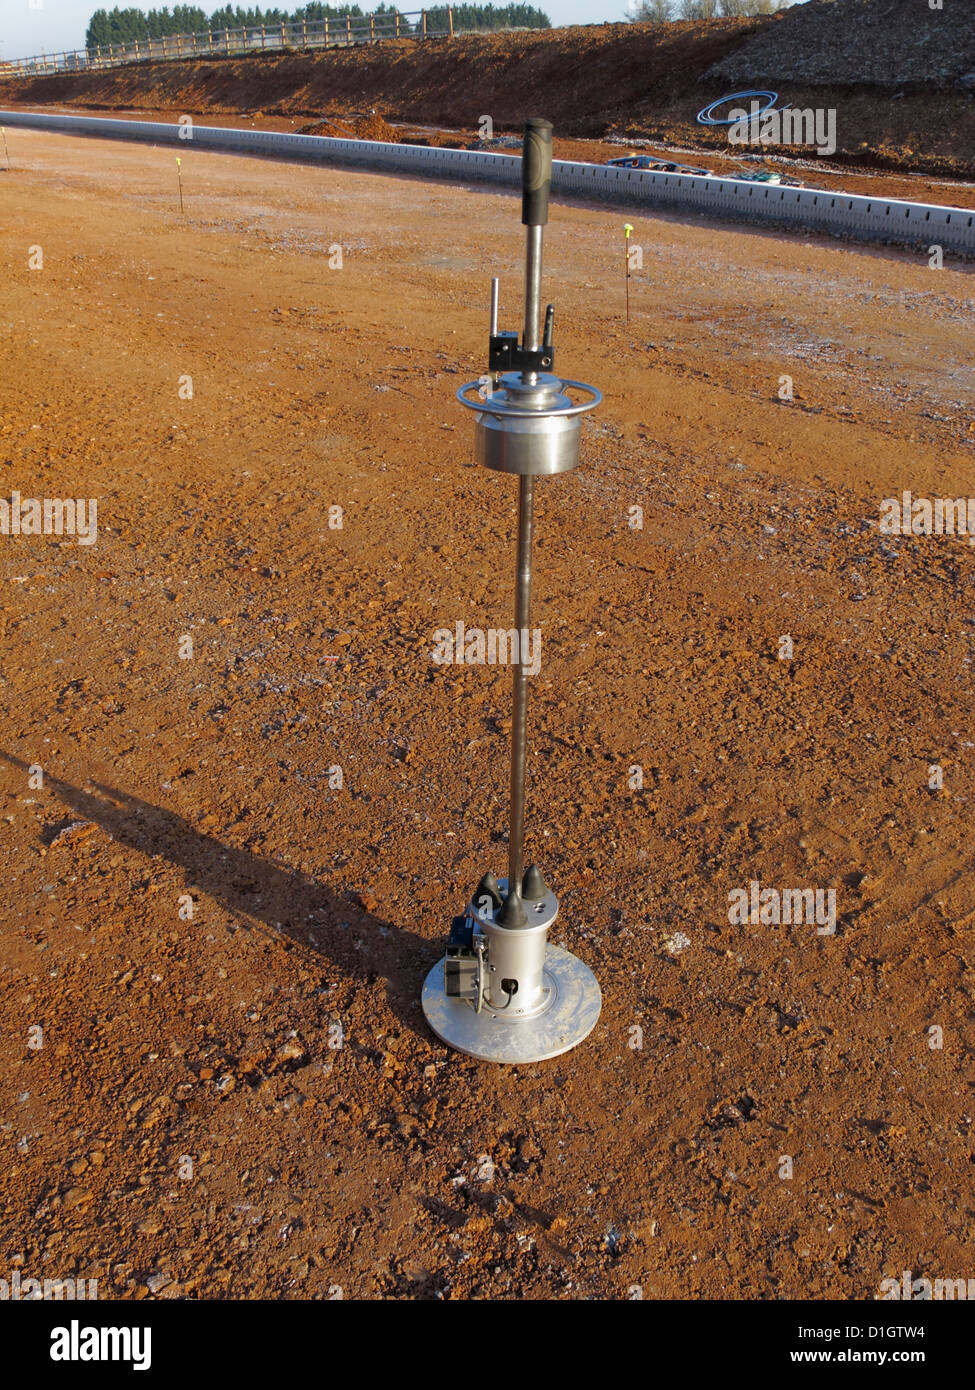 Dynamic Plate Bearing test apparatus on highway formation level road construction site UK - Stock Image